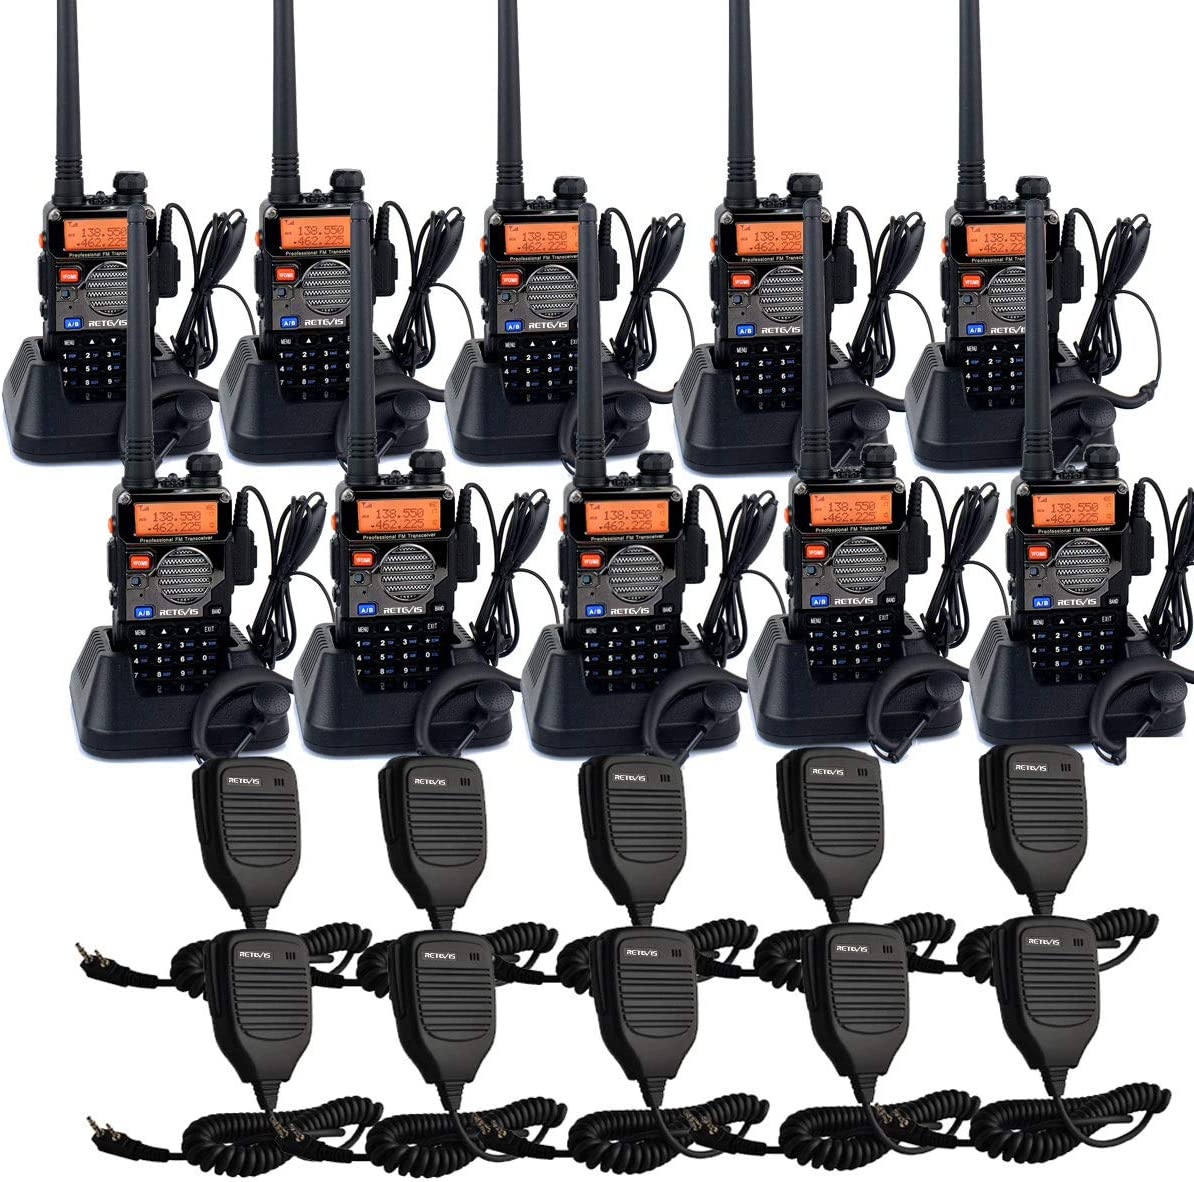 Retevis RT-5RV 2 Way Radios Long Range, VHF/UHF Dual Band Two Way Radio, Walkie Talkies with Earpiece and Mic, 128CH Handheld Radios for Large Retail, Contractor(10 Pack)